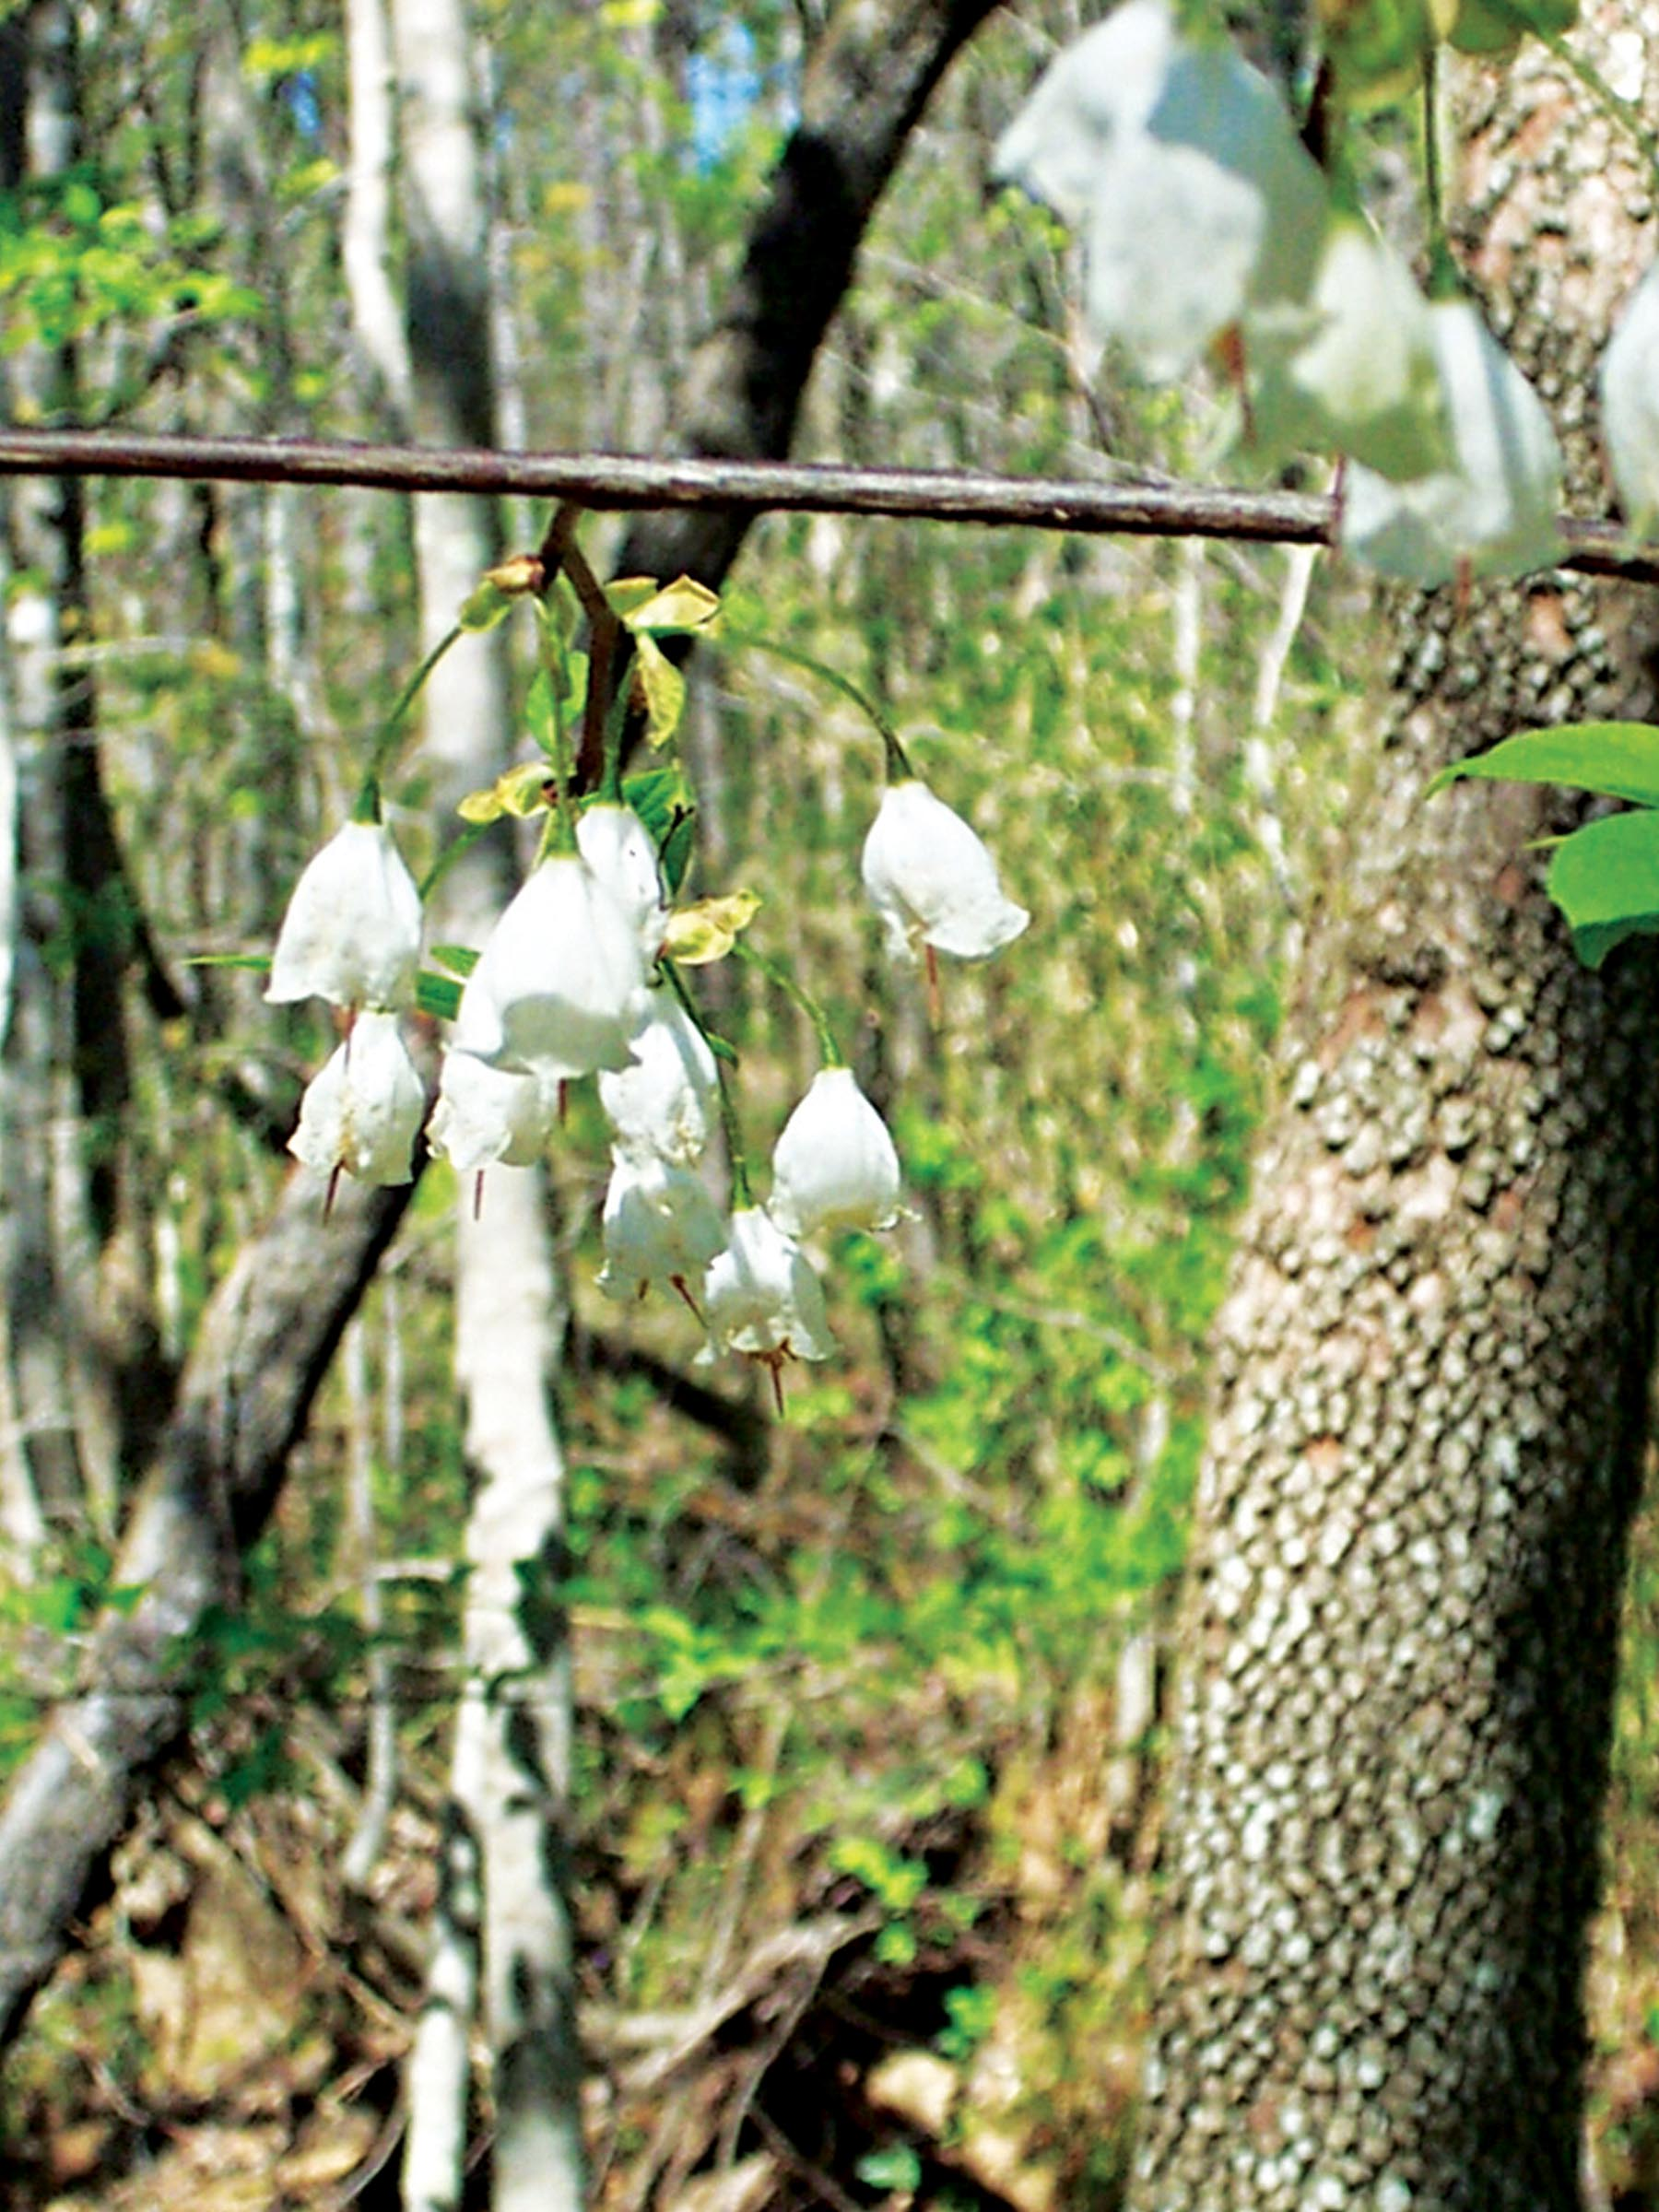 Diversifying charlotte treescharlotte typically growing from about 30 to 50 feet tall with smooth gray bark and a broad rounded crown its fragrant white flowers appear in early summer mightylinksfo Image collections